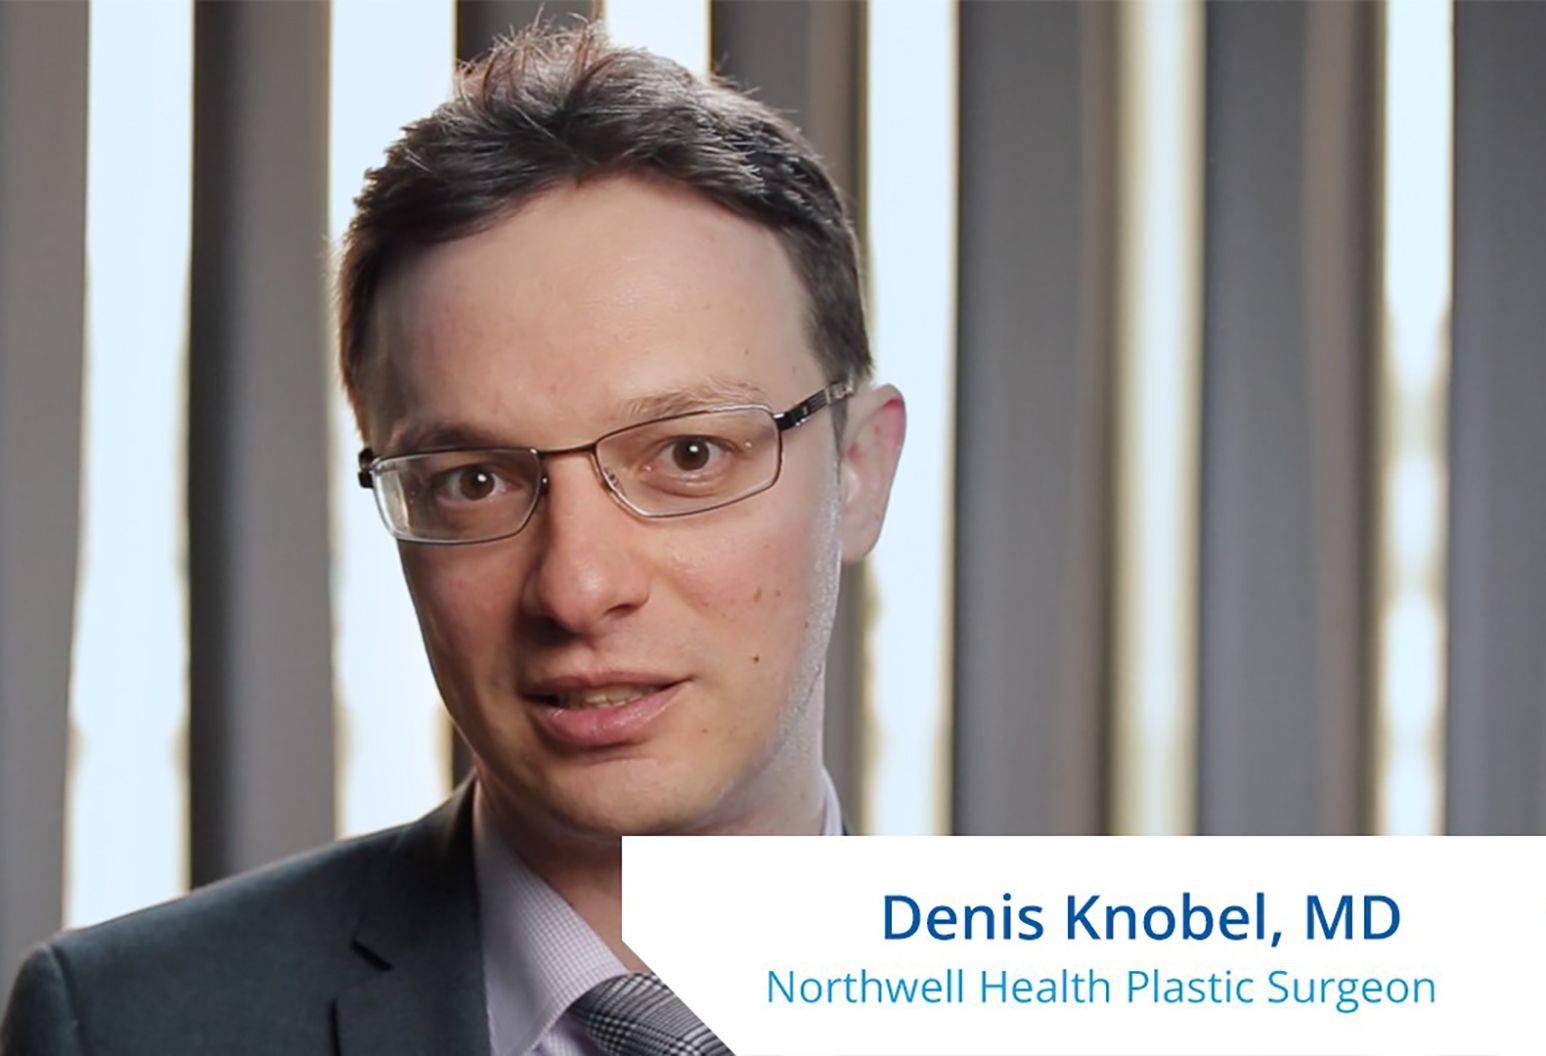 """A man with short brown hair and wearing glasses speaks to the camera. On the lower right corner of the photo it reads, """"Denis Knobel, MD. Northwell Health Plastic Surgeon."""""""